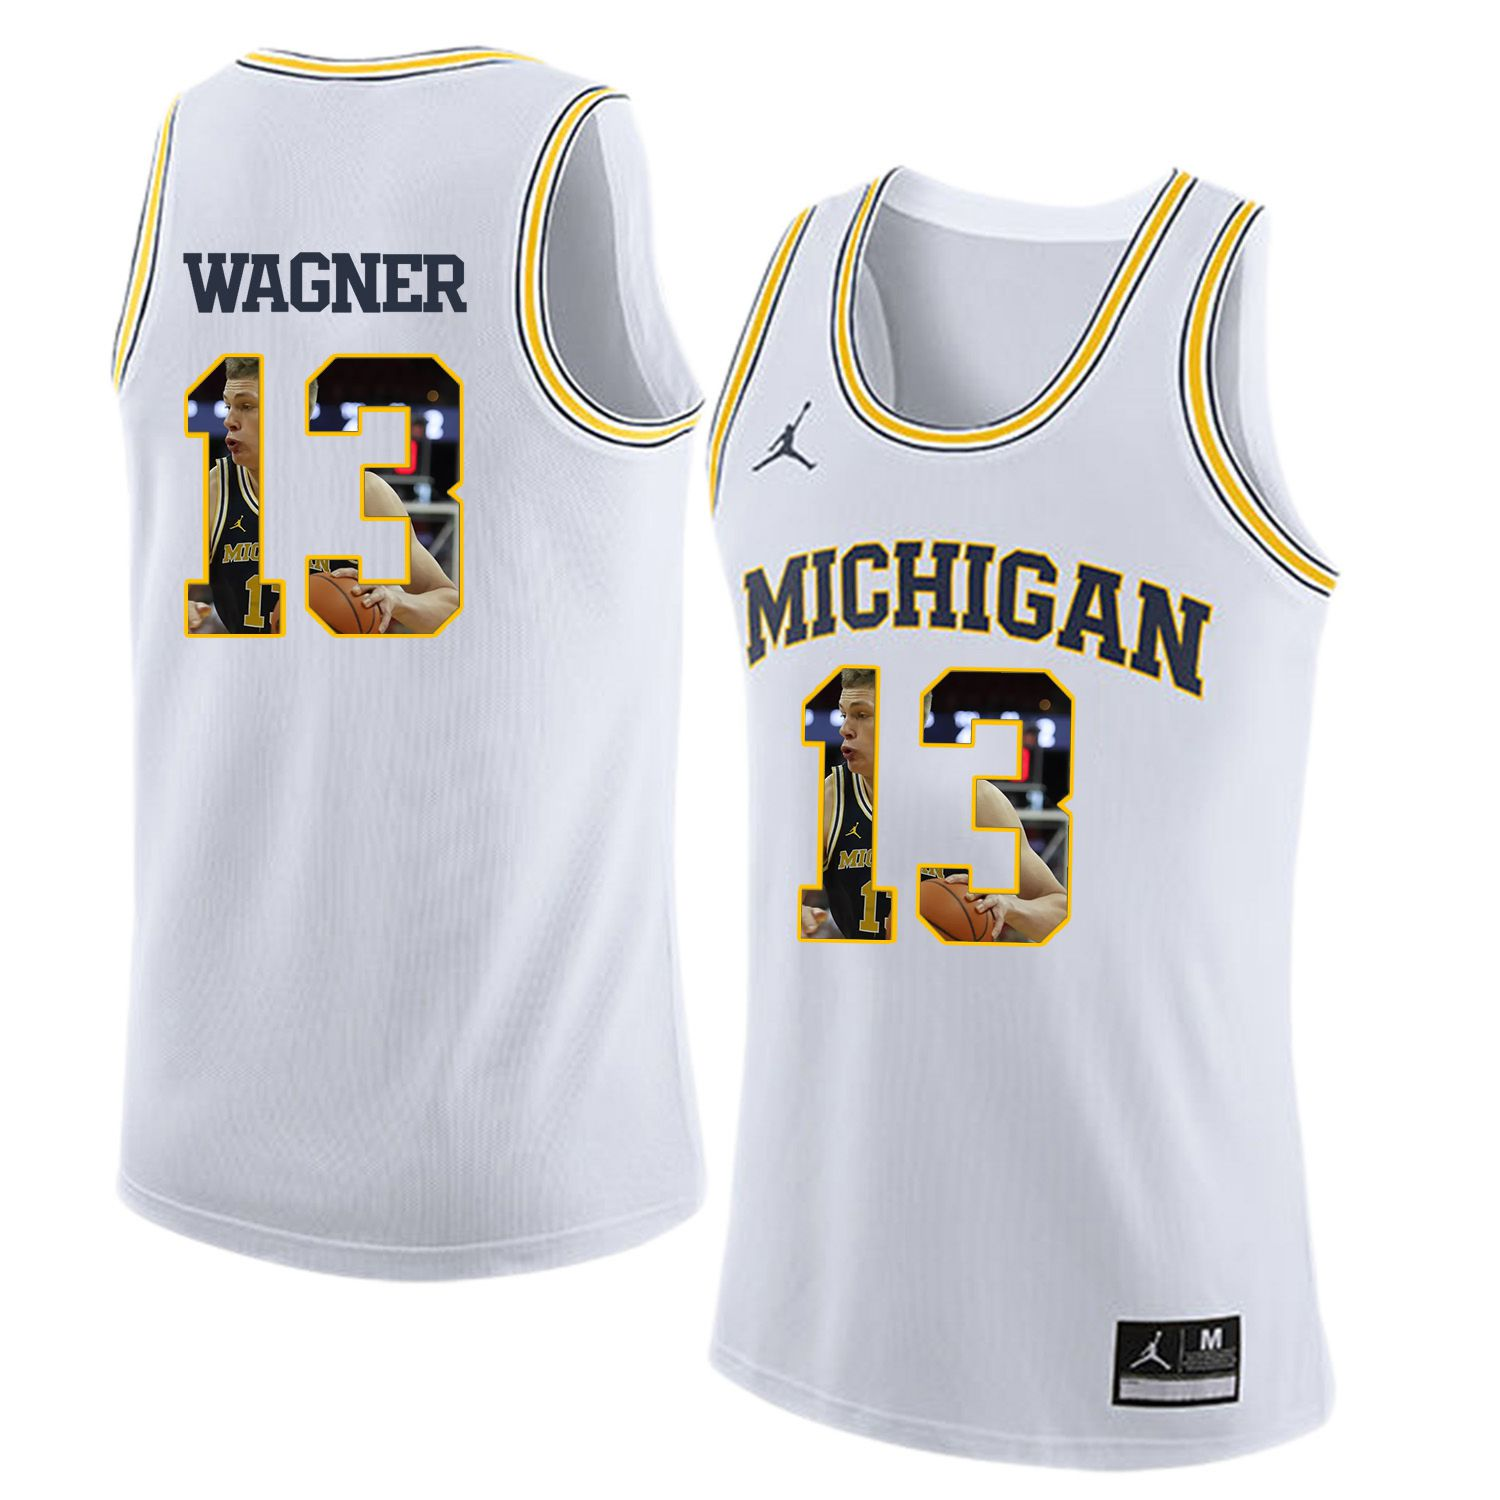 Men Jordan University of Michigan Basketball White 13 Wagner Fashion Edition Customized NCAA Jerseys